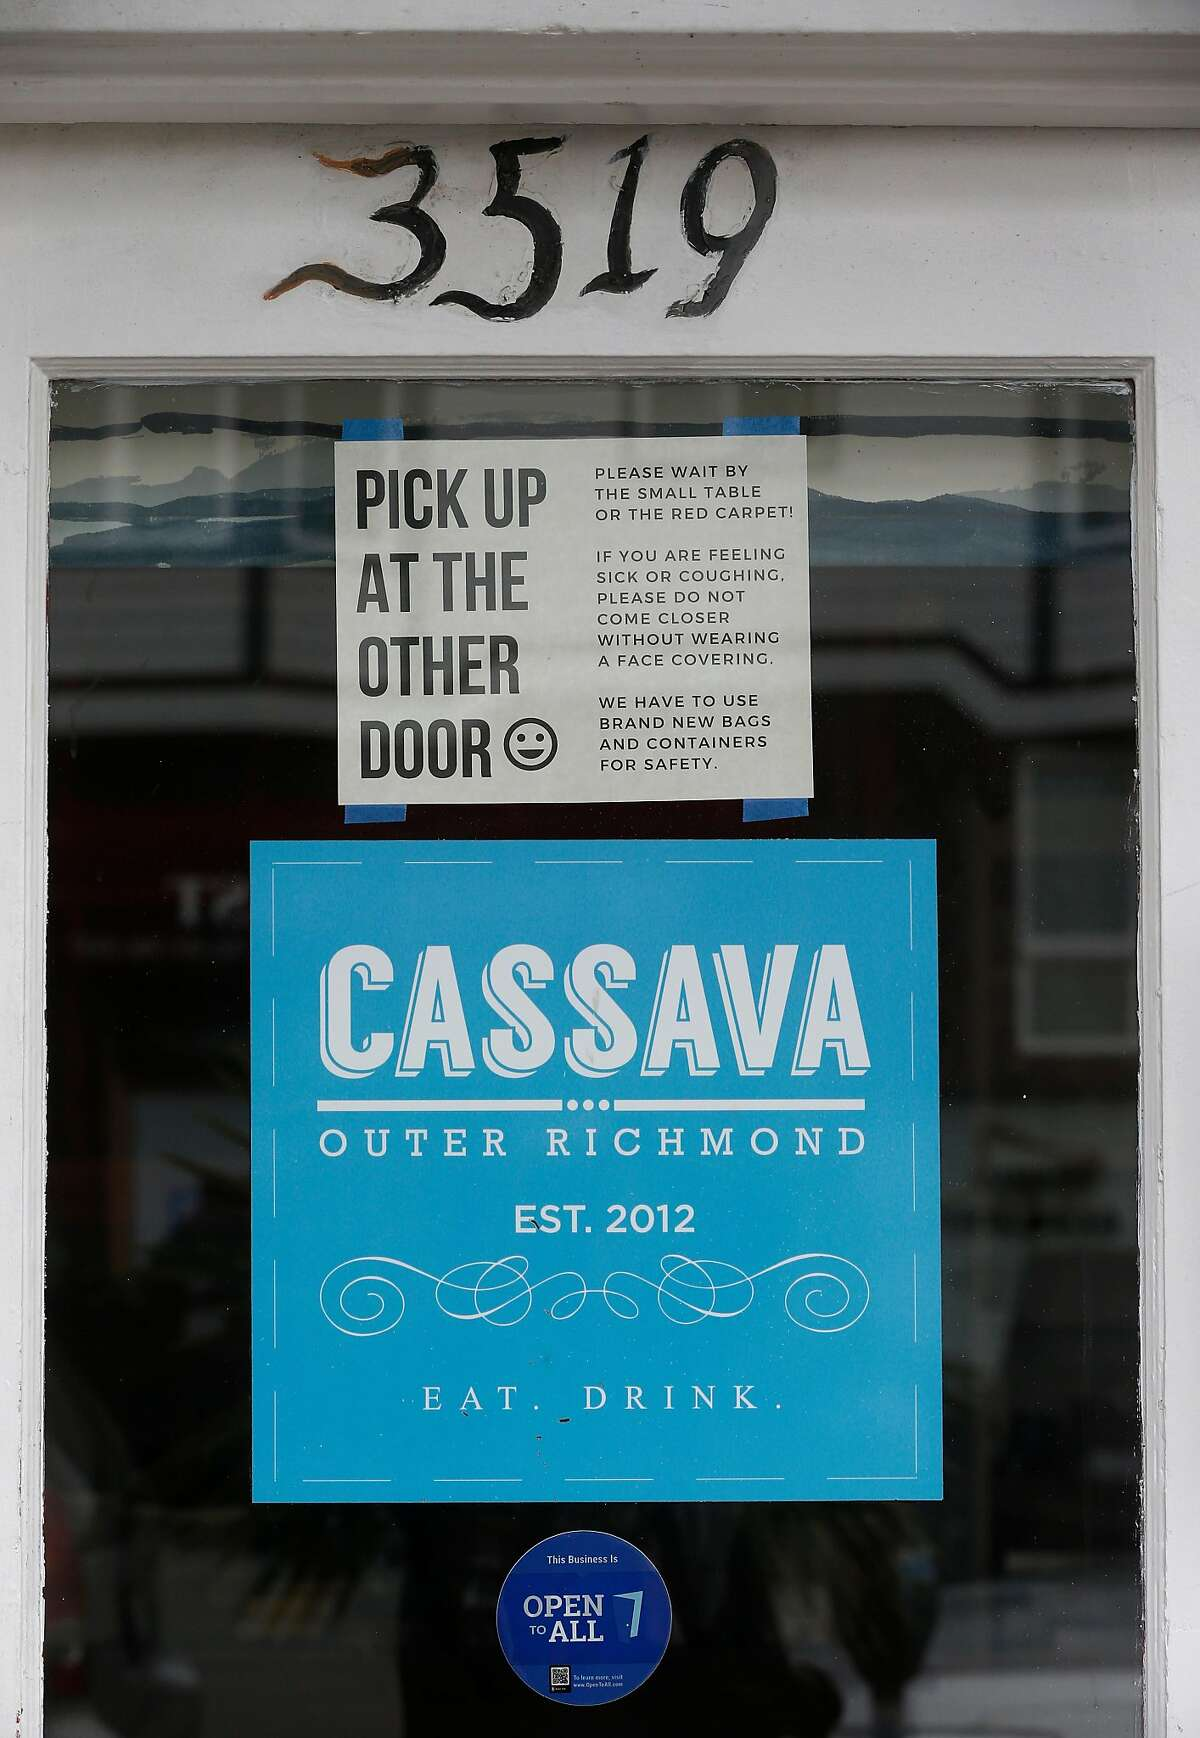 Cassava restaurant on Balboa Street is serving to-go meals only in San Francisco, Calif. on Wednesday, April 8, 2020. Cassava owners have had some of their small business insurance claims denied as the restaurant struggles to stay open by serving take-out orders only during the coronavirus pandemic.